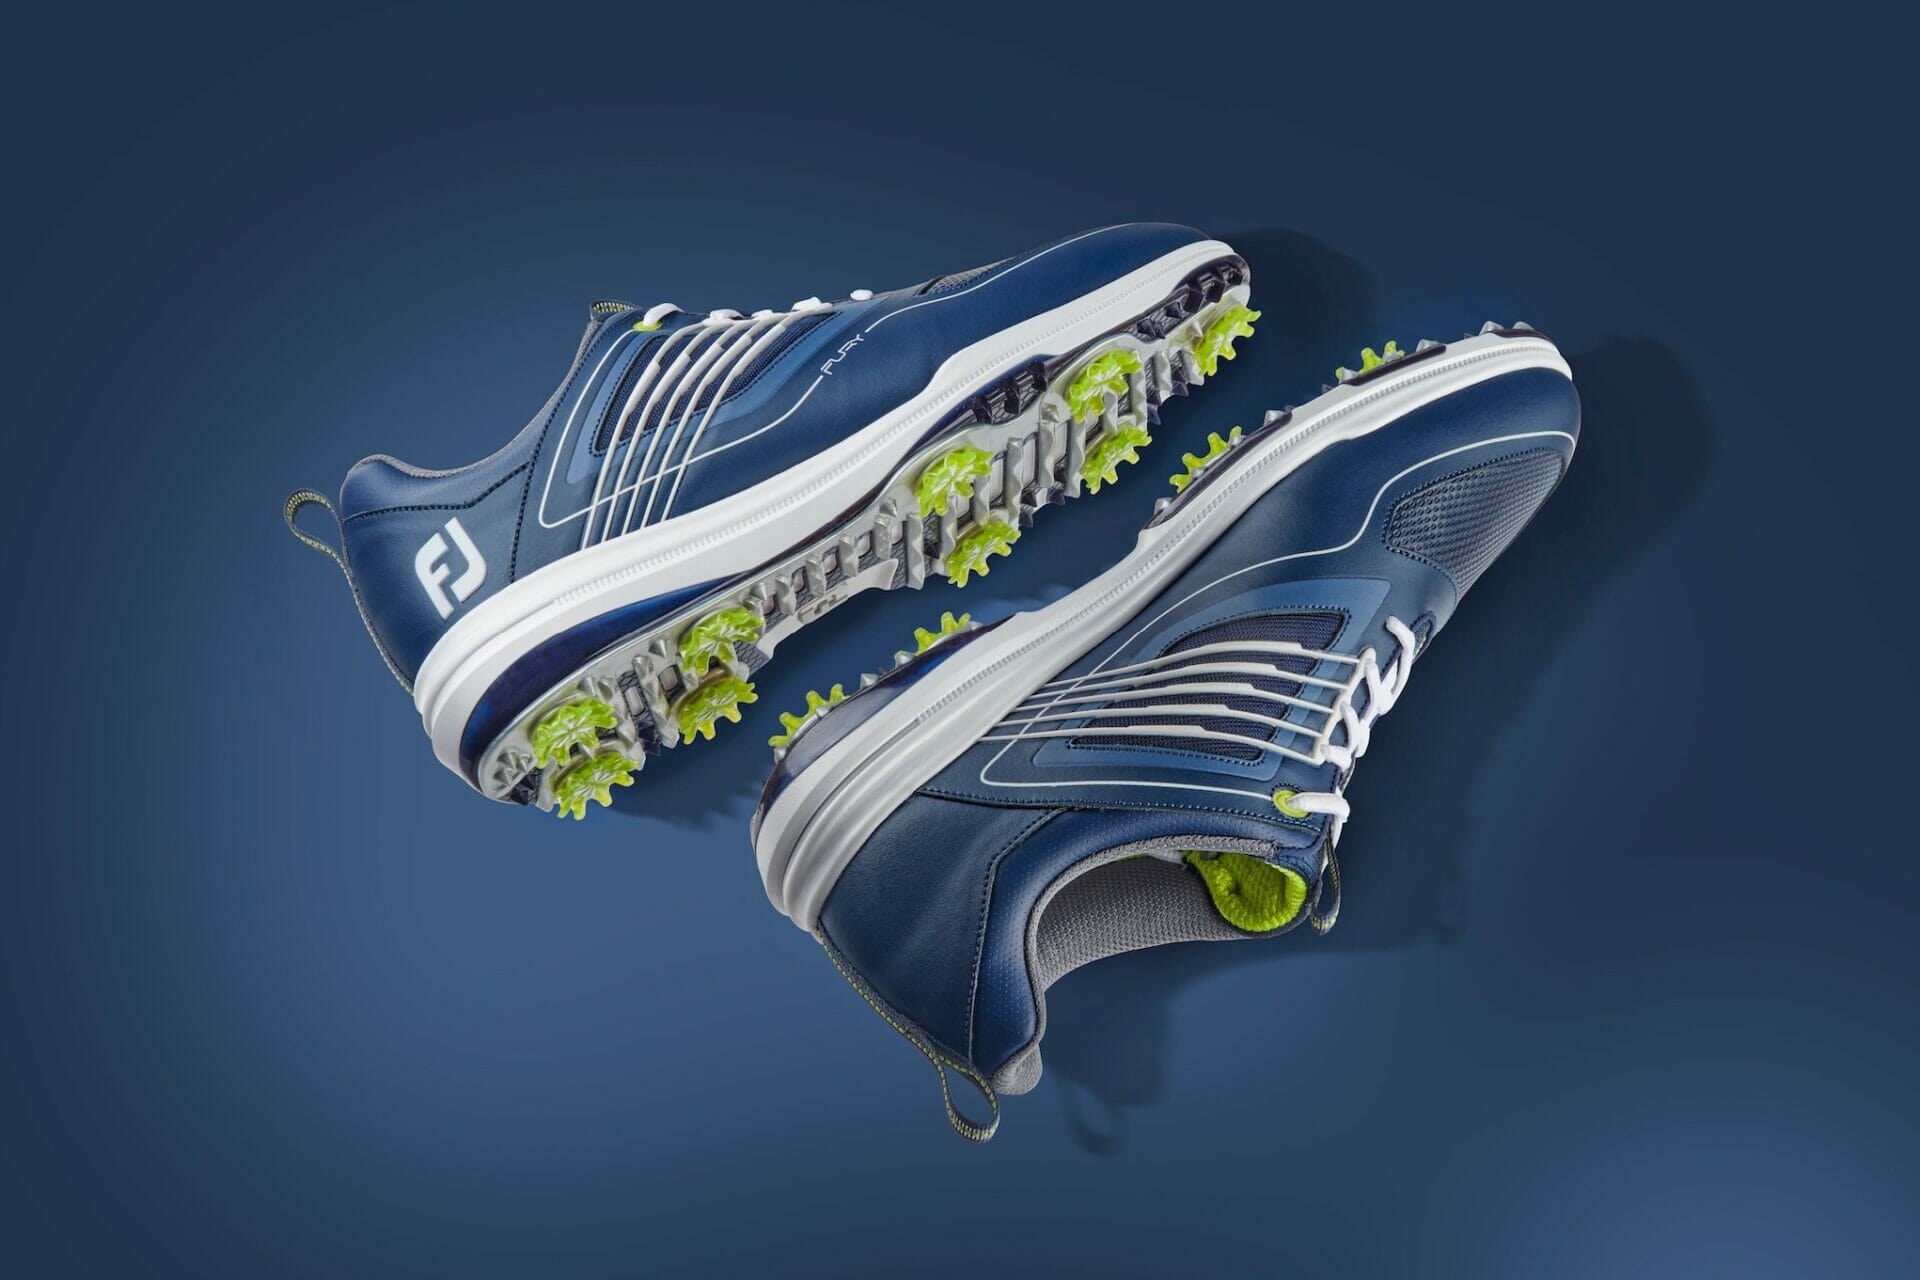 630106f6ddf FootJoy has unveiled their latest golf shoe offering for 2019 with the  all-new Fury.